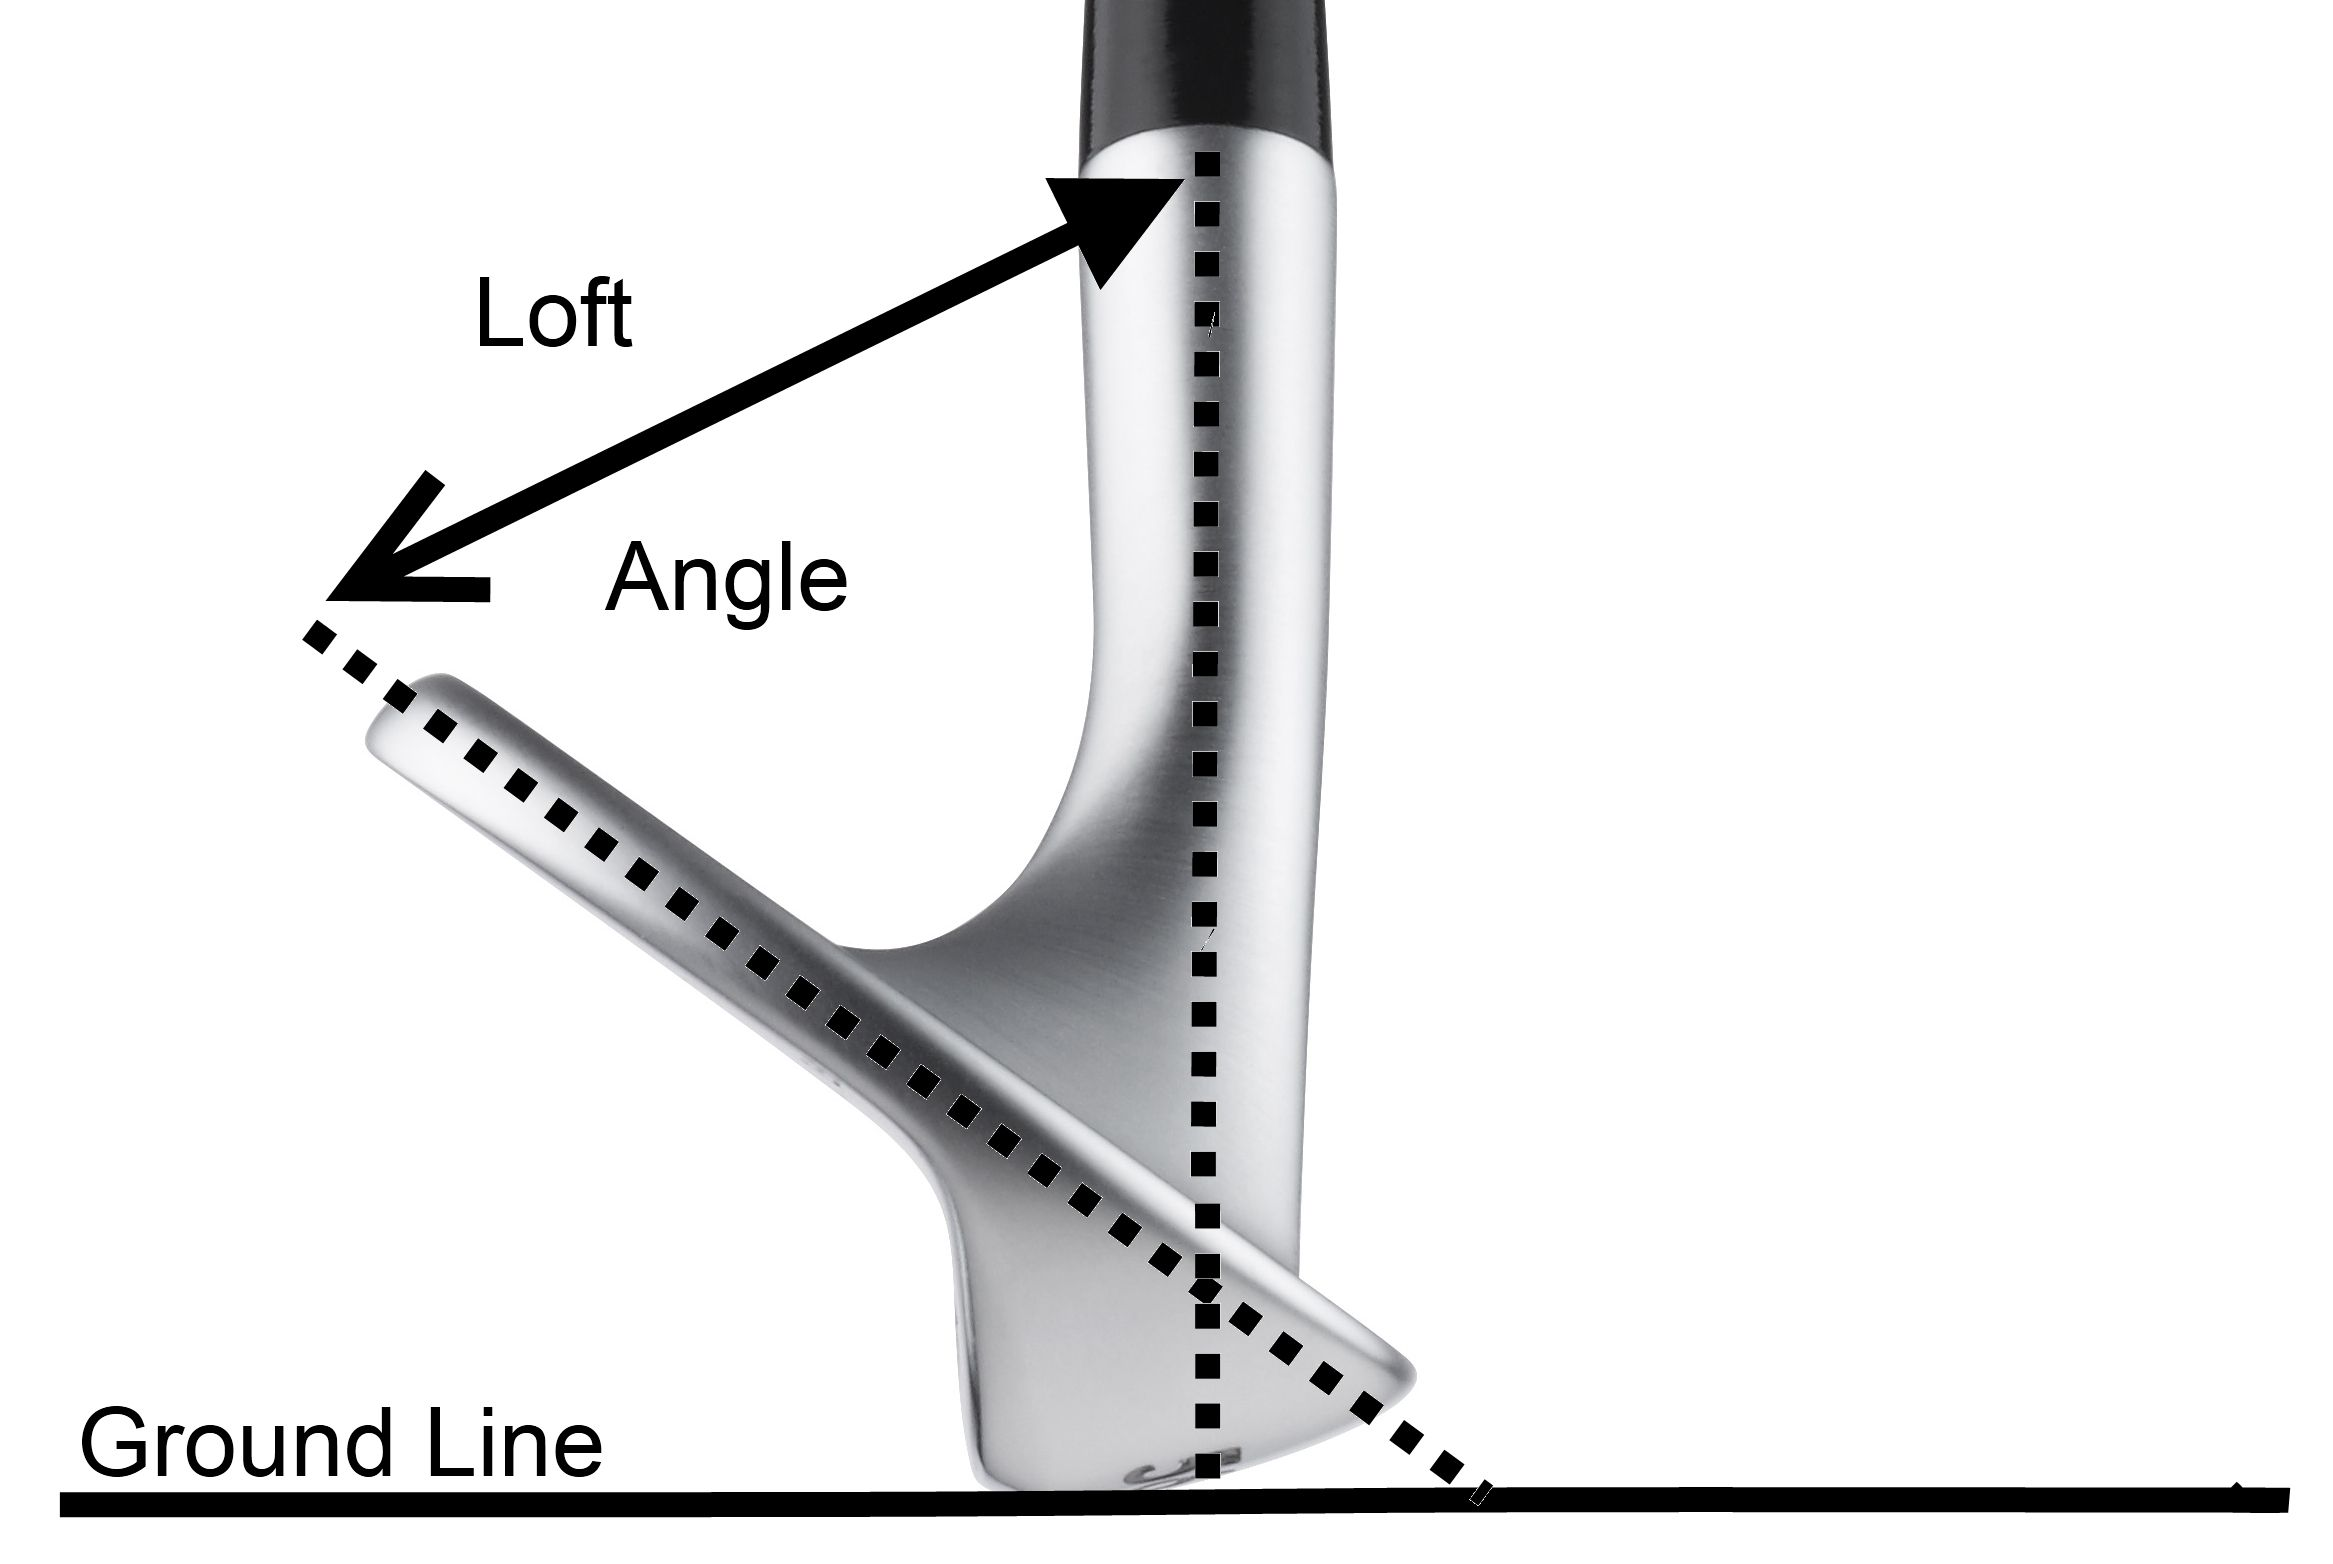 explaining the meaning of loft angle in golf clubs